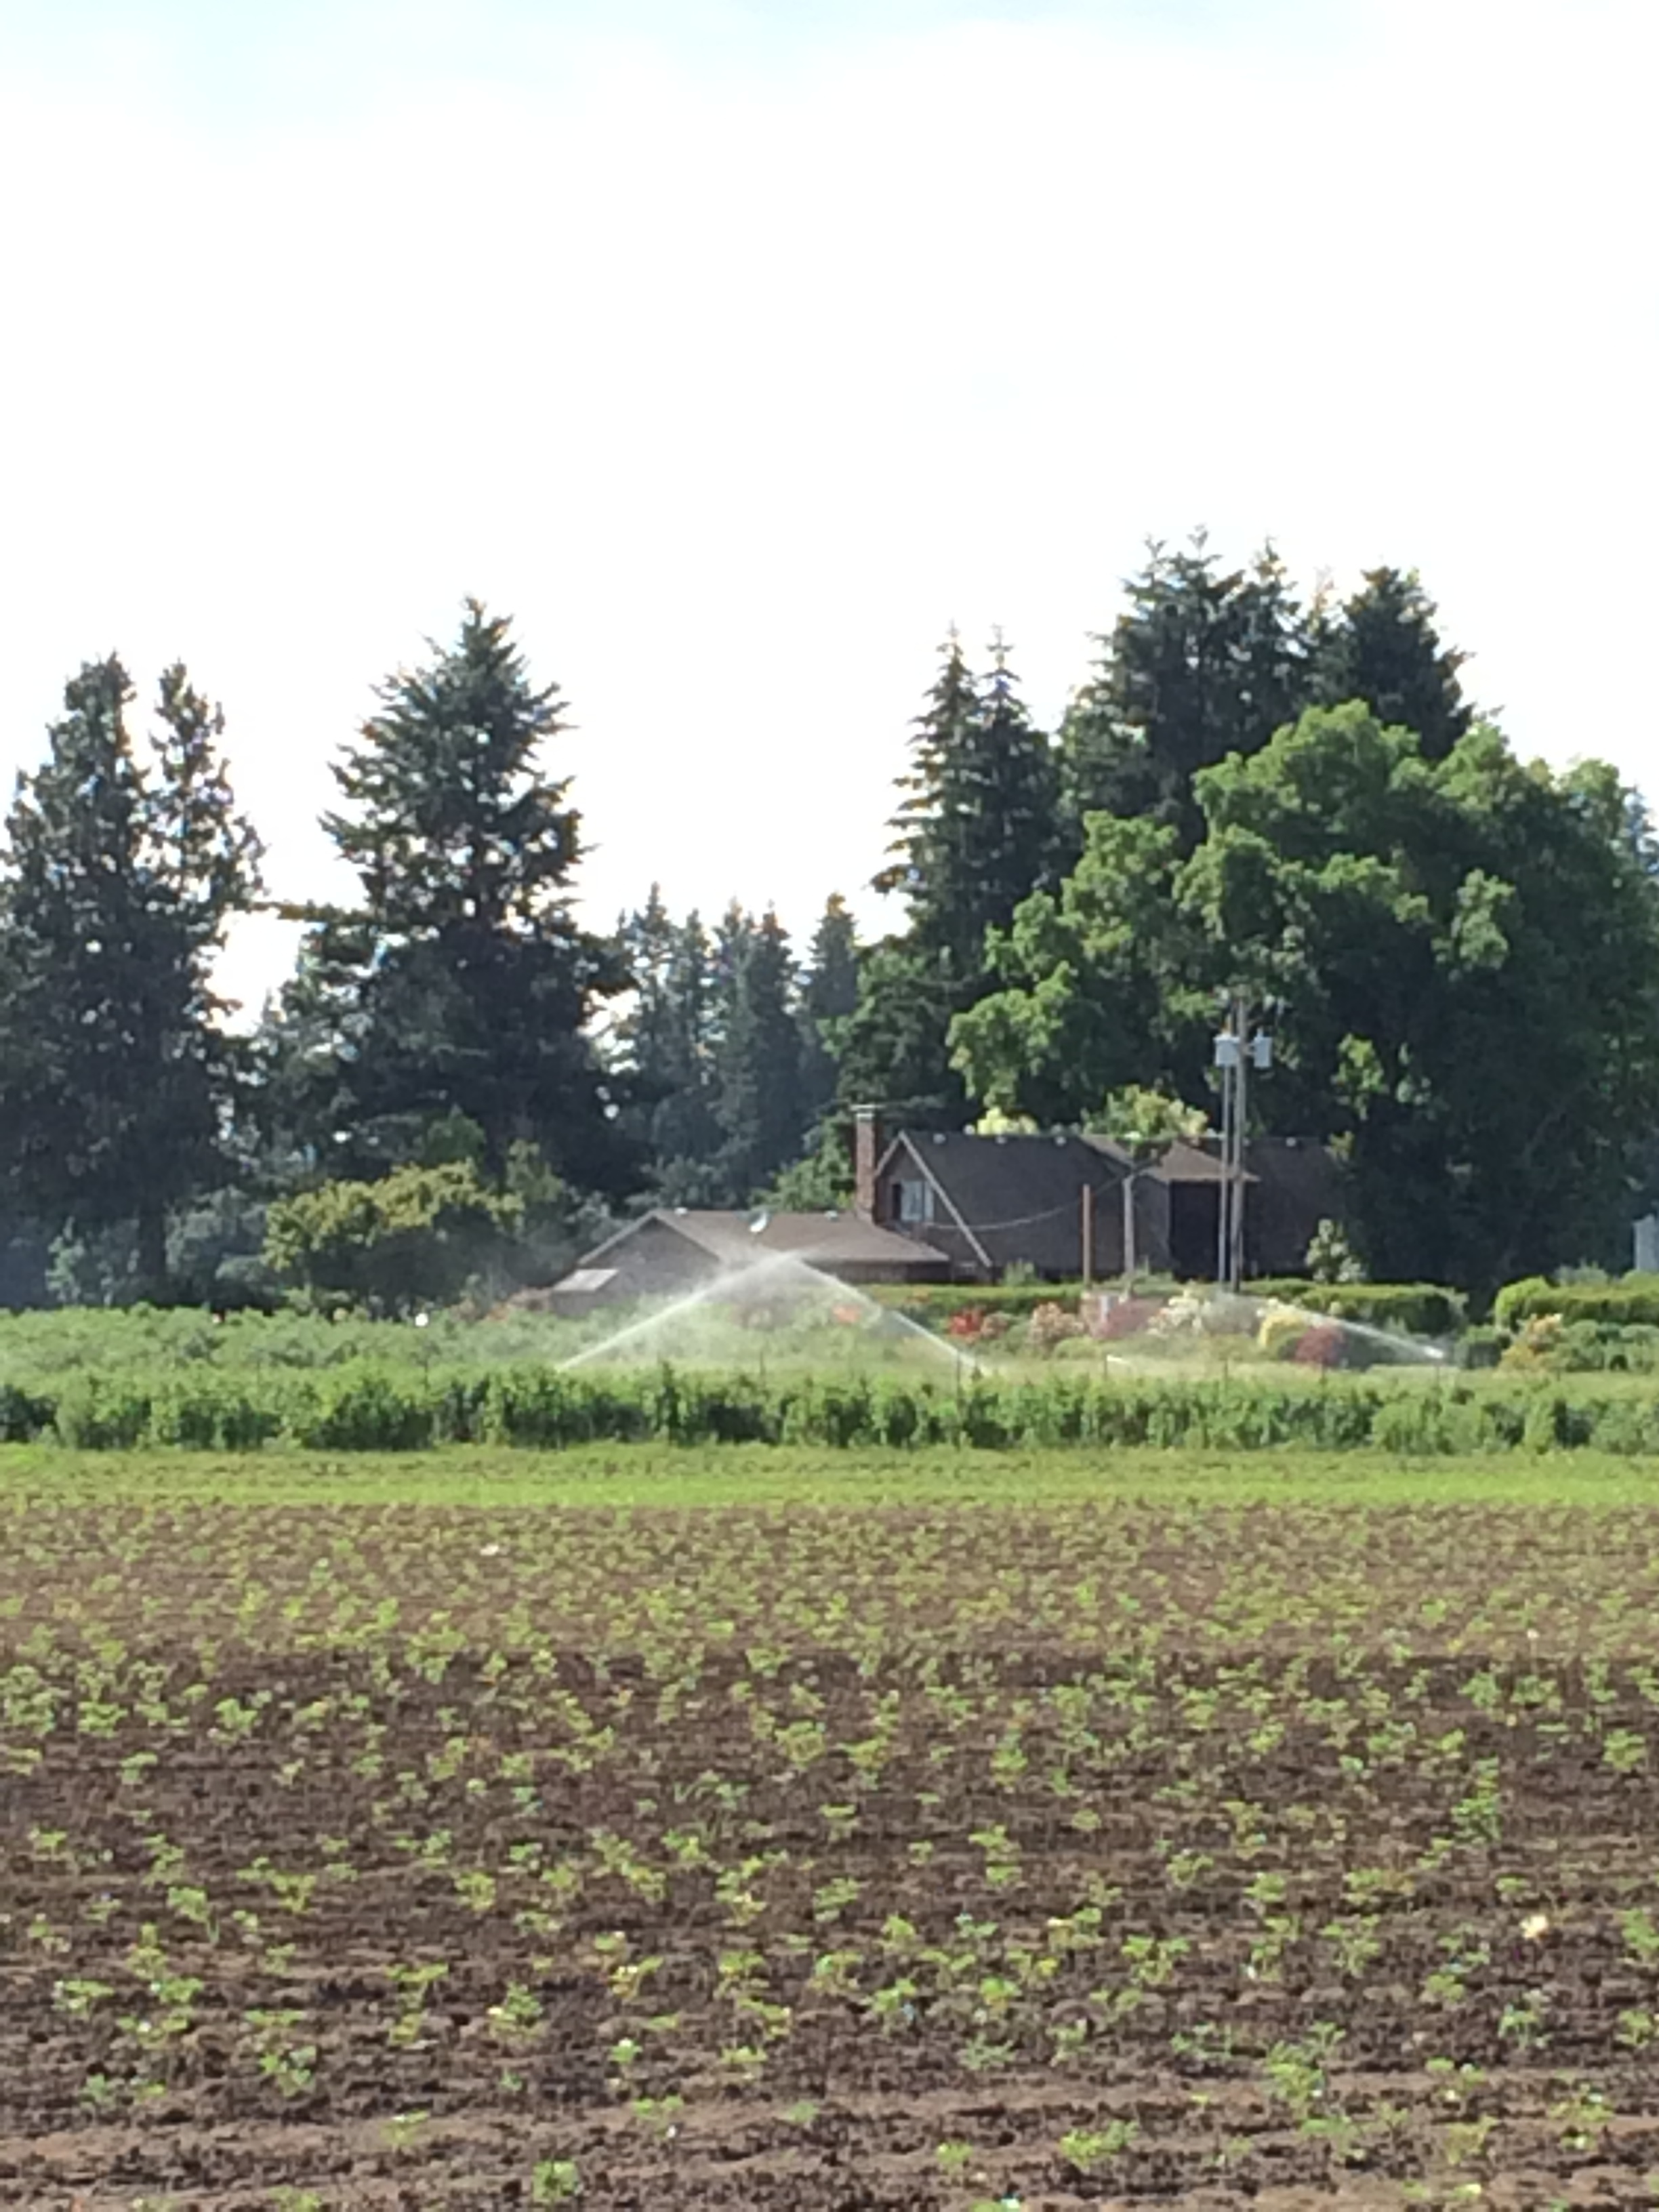 I think this is the most beautiful farm in the Willamette Valley. I am always thrilled to show it to my customers. Those little plants in the foreground are baby strawberries.